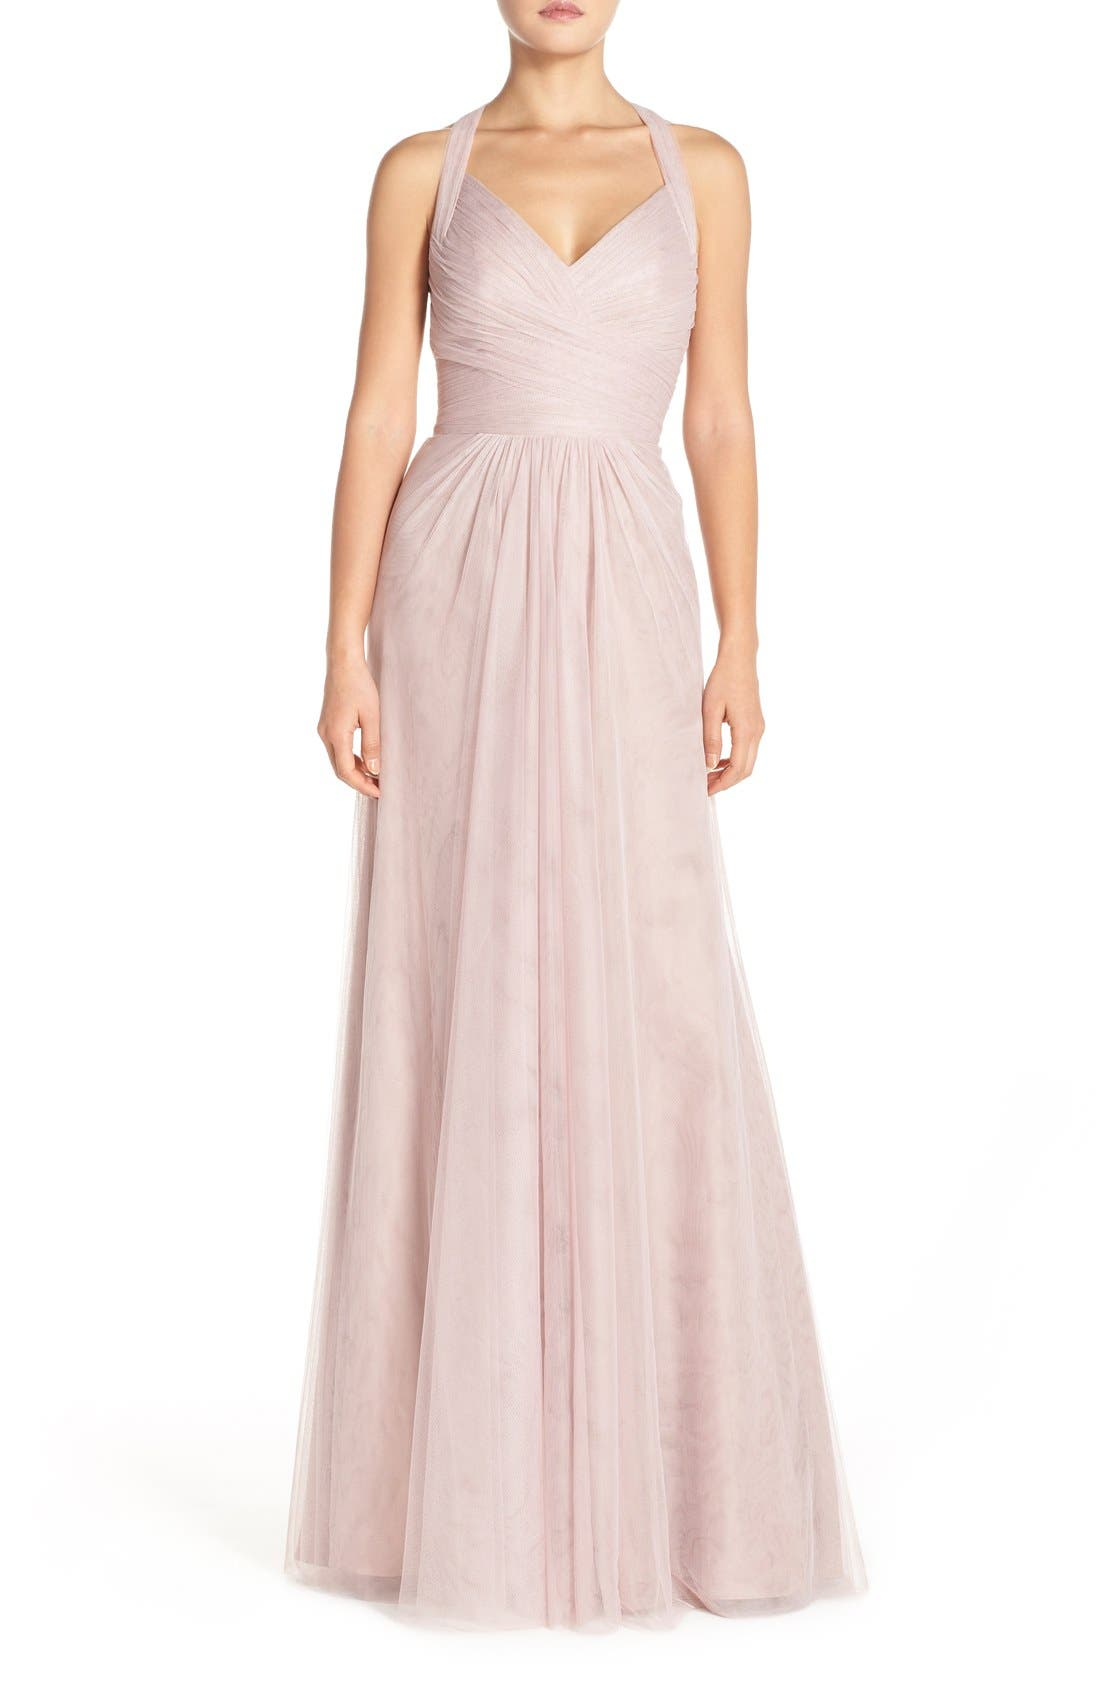 Main Image - Monique Lhuillier Bridesmaids Sleeveless V-Neck Tulle Gown